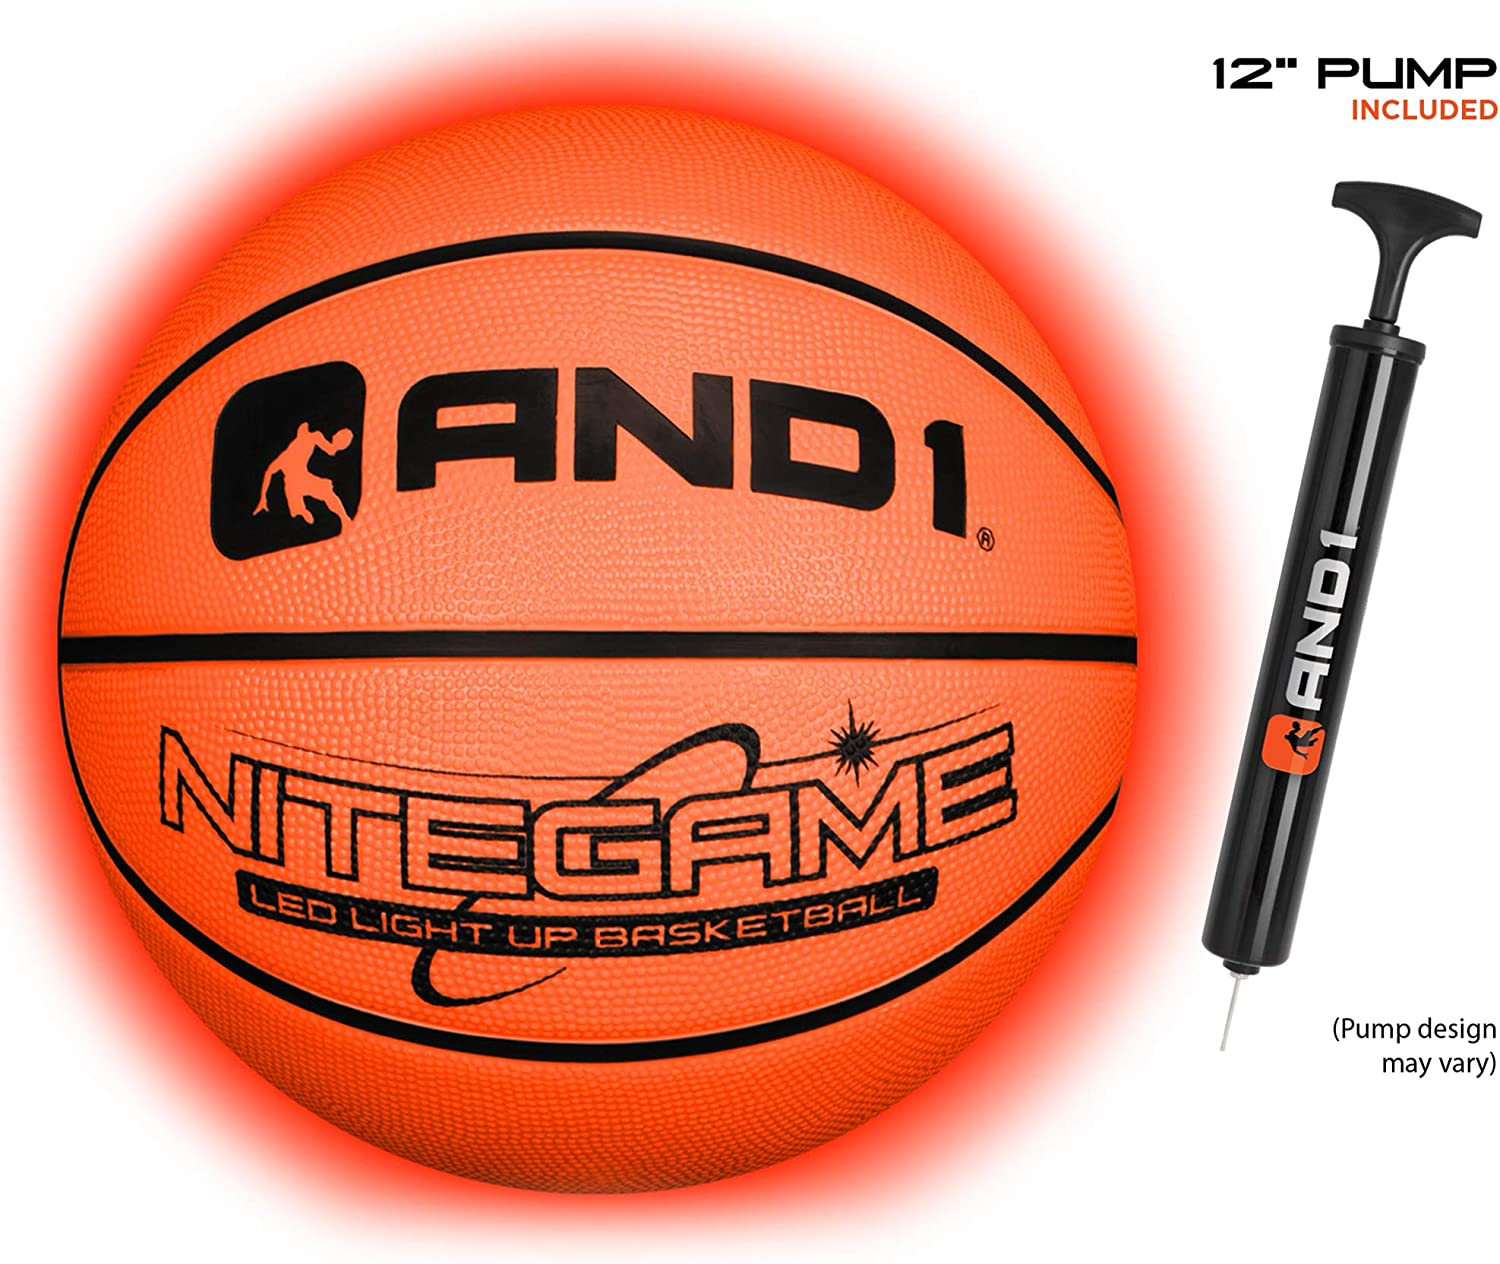 Teens and Adults AND1 LED Light Up Basketball Impact Activated Glowing Basketball for Kids Deflated w//Pump Included : Nitegame Glow in The Dark Ball- Night Ball for Indoor and Outdoor Games